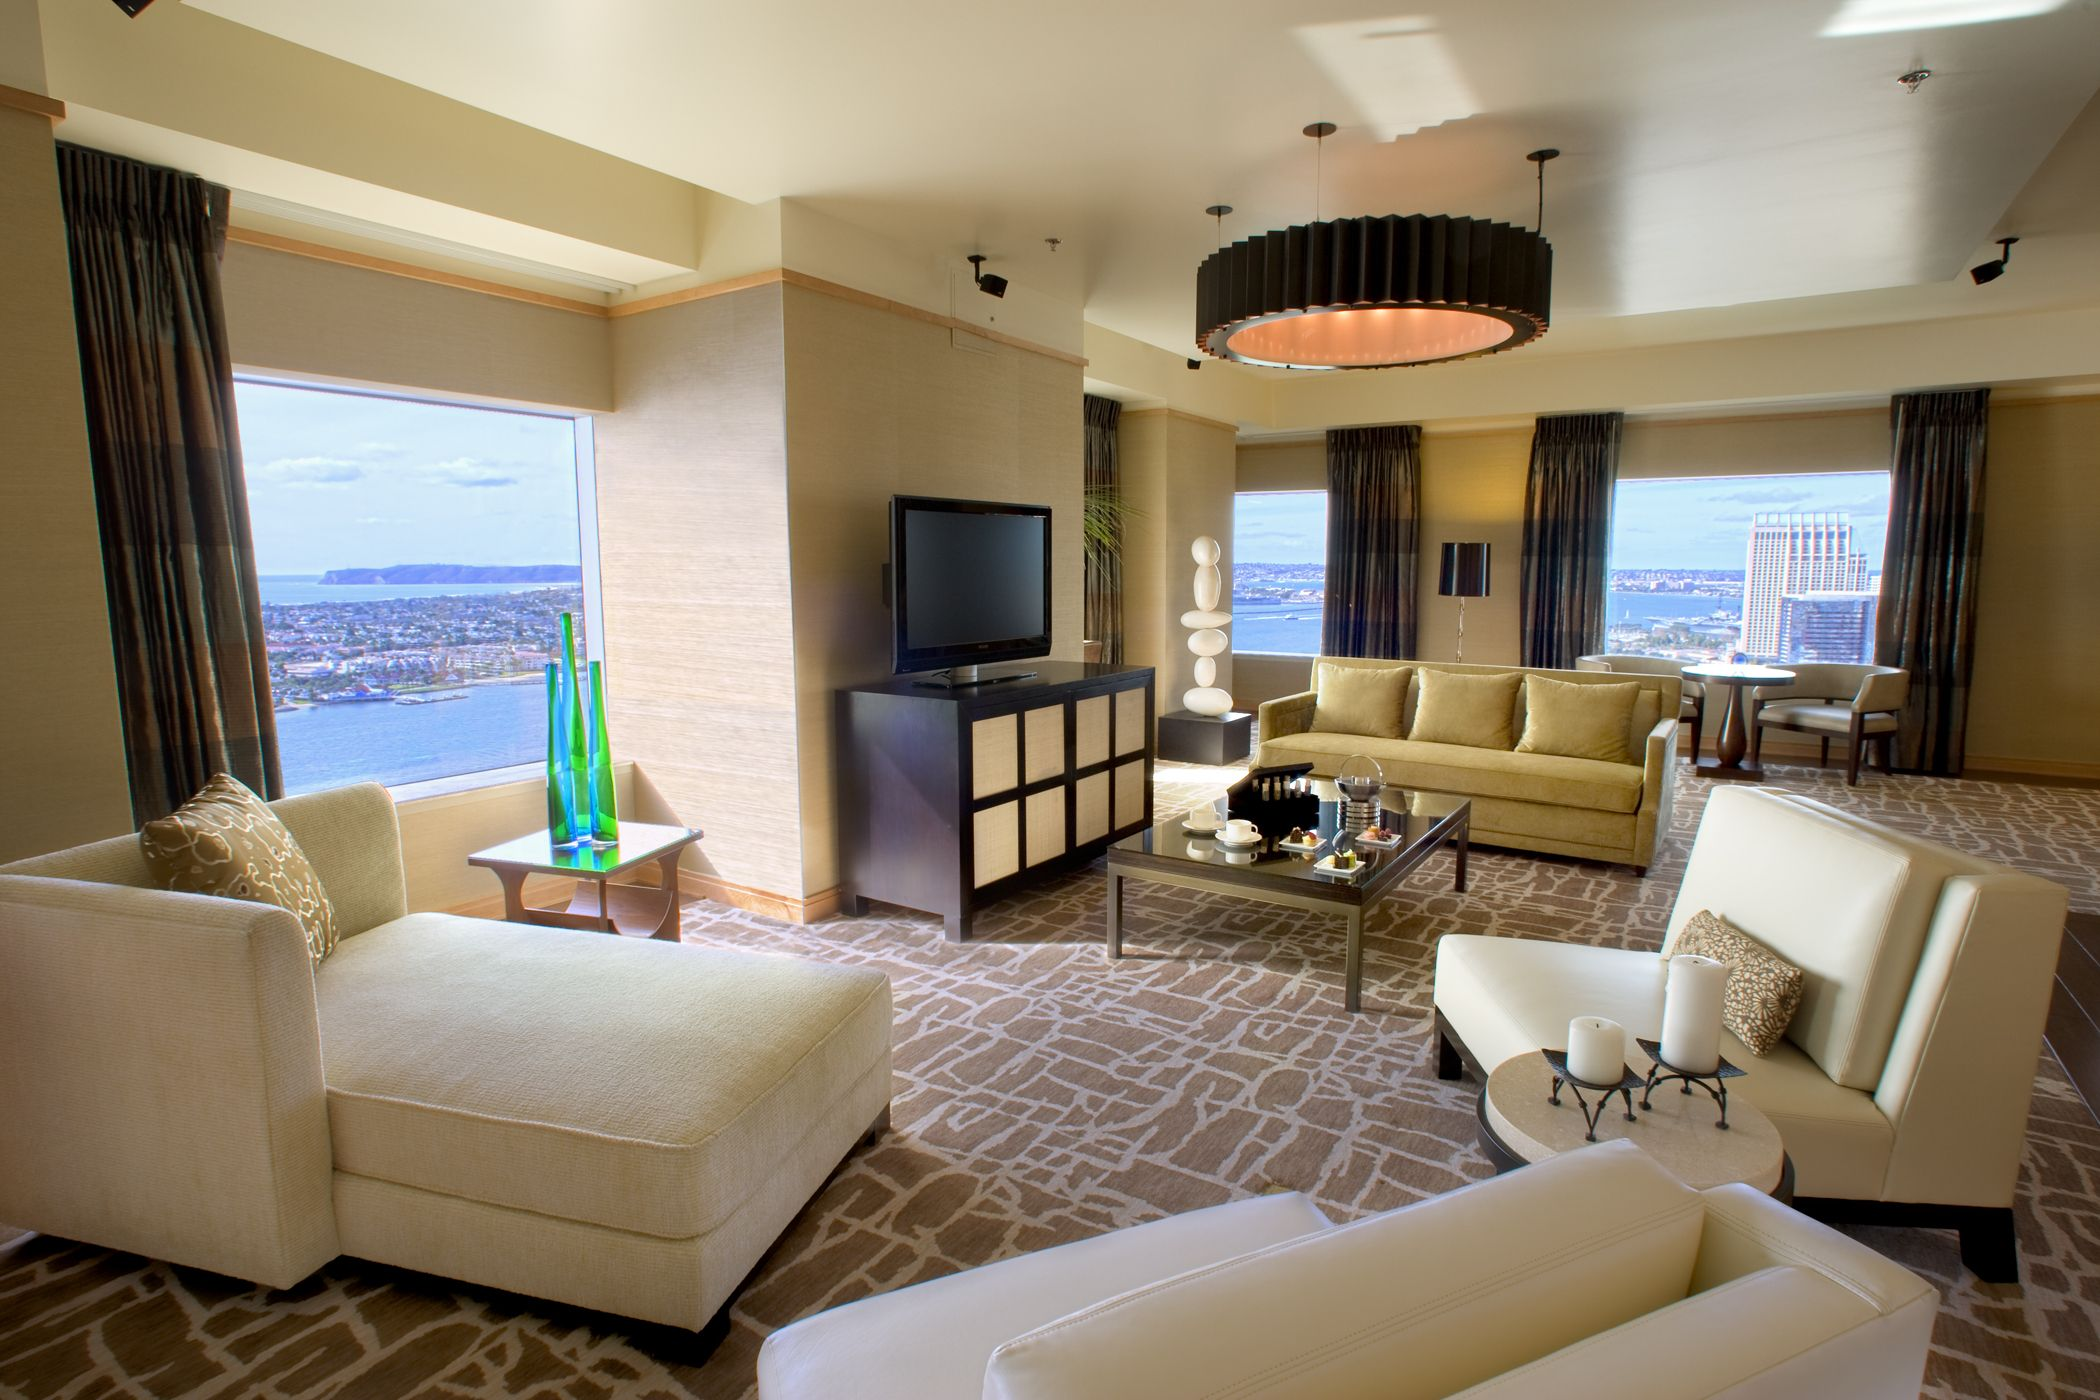 Our presidential suite living room! | The Hotel | Pinterest